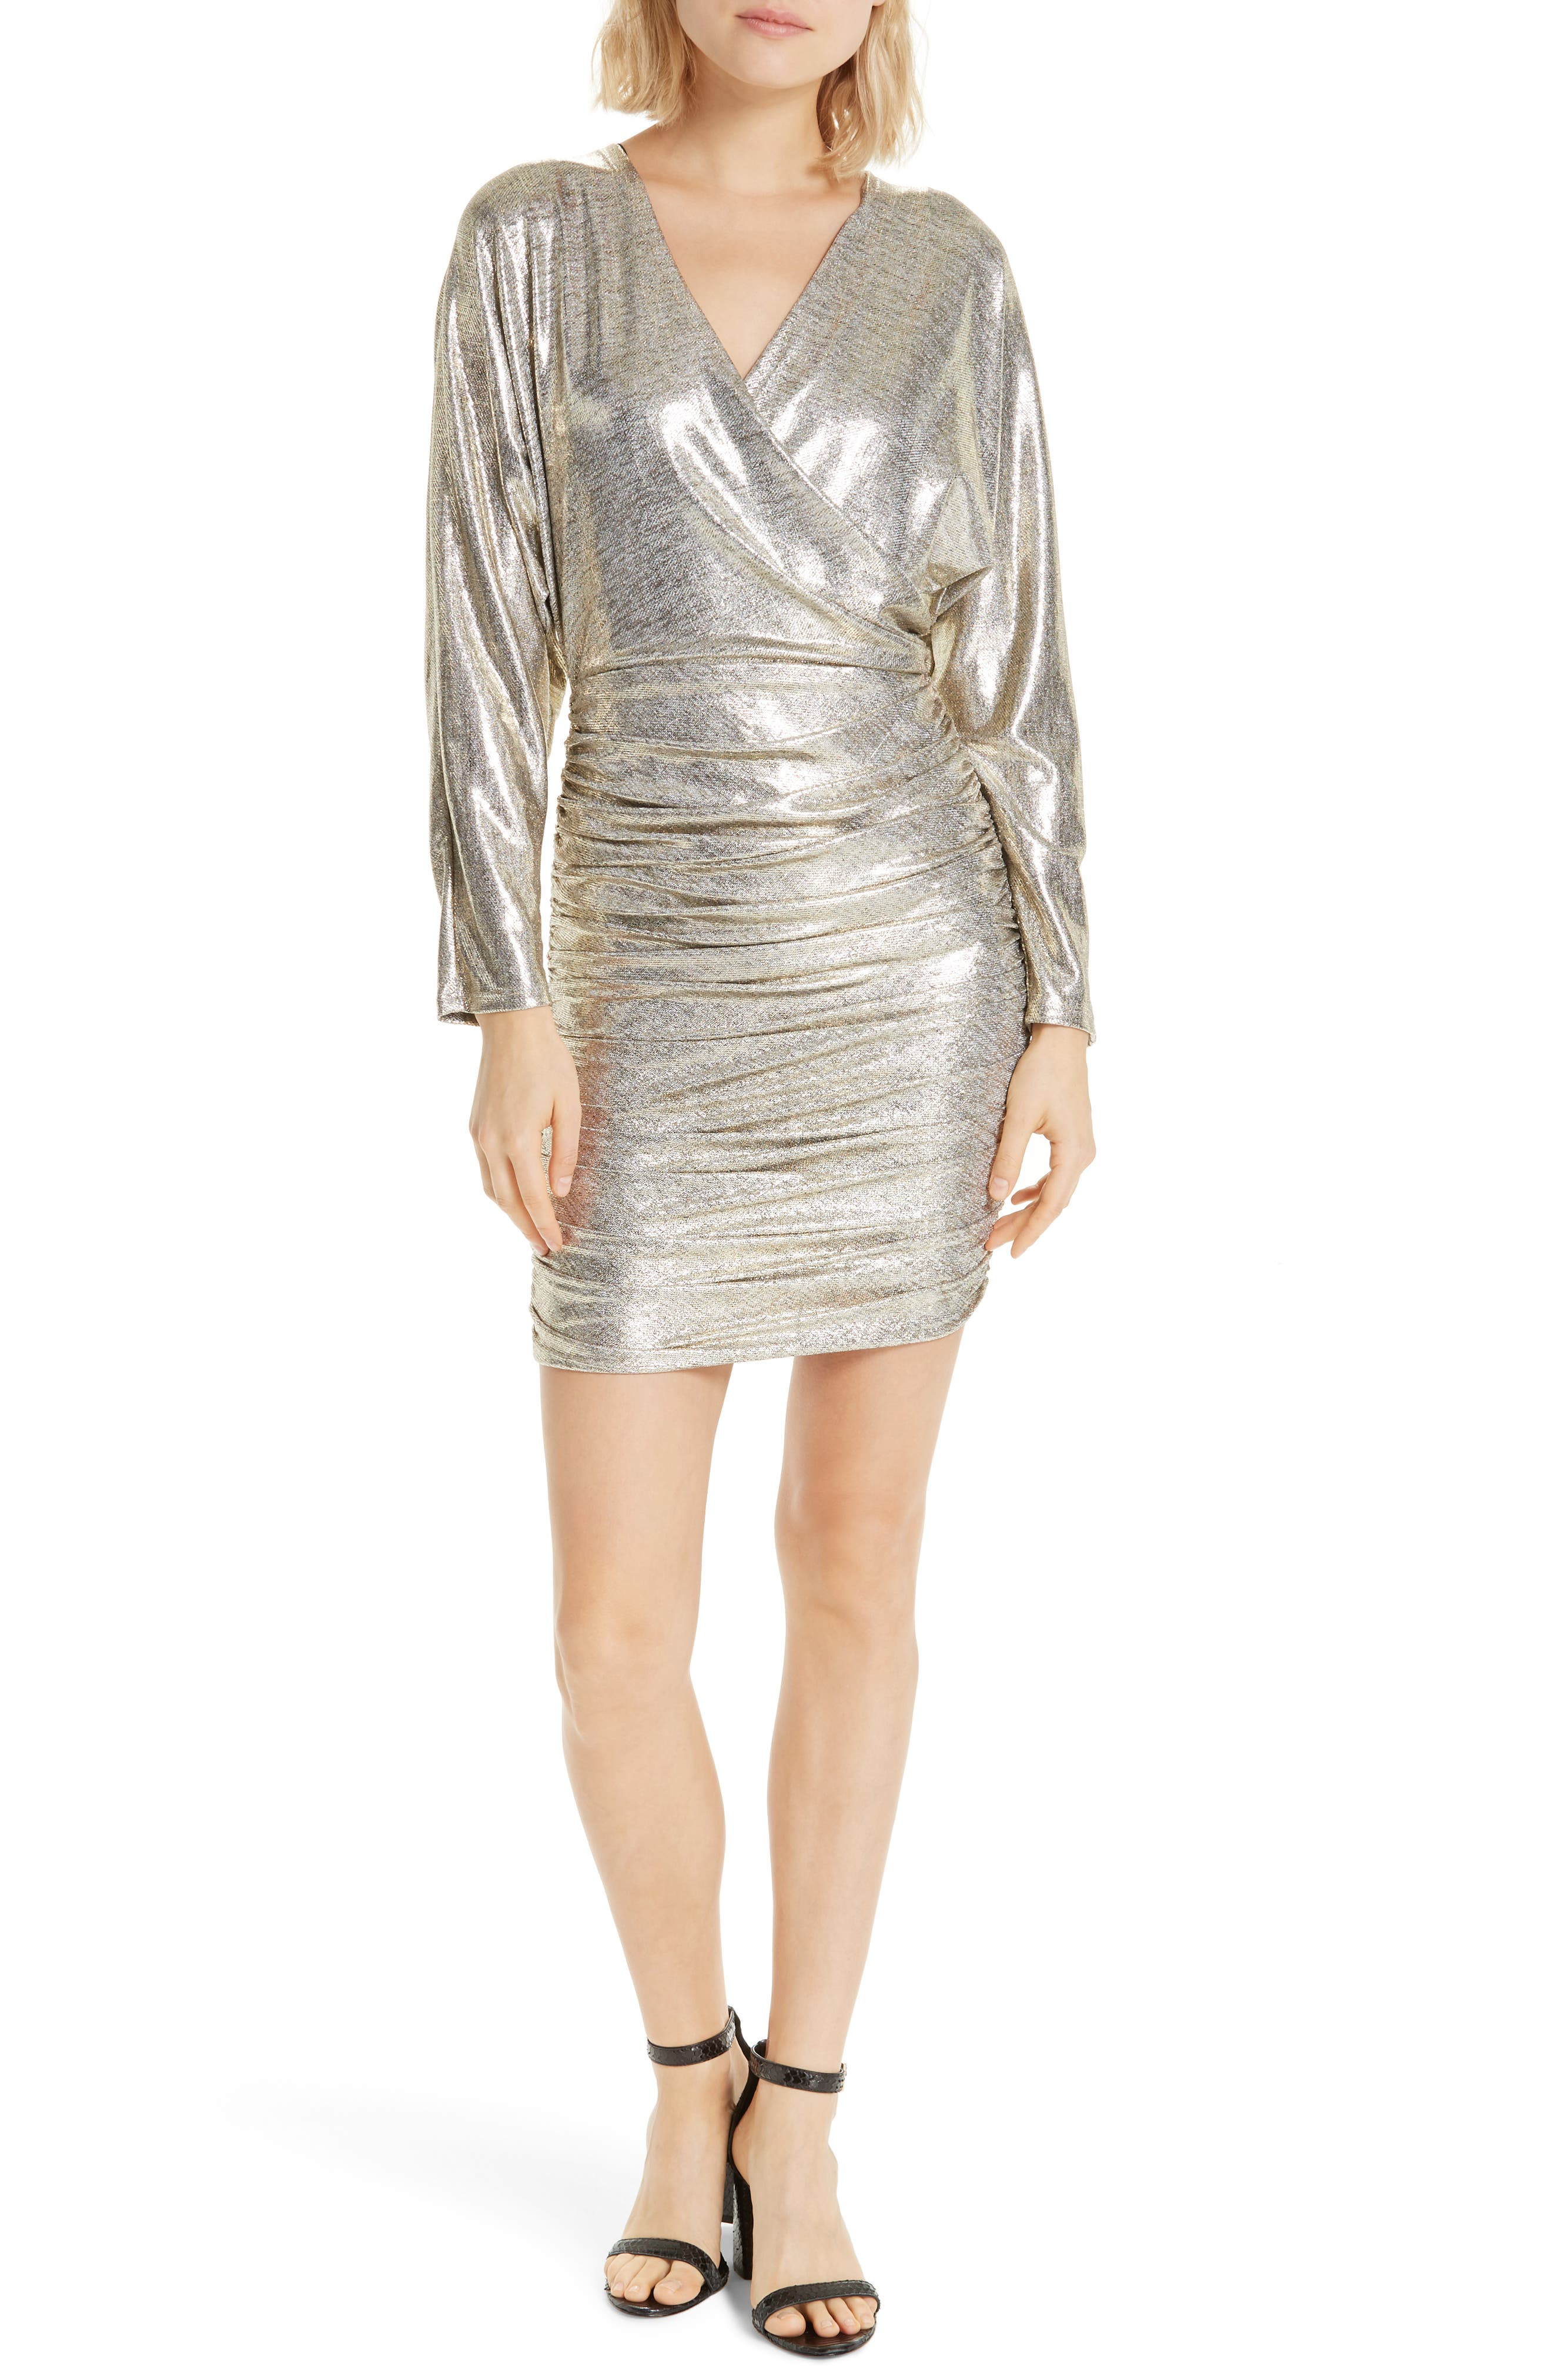 ALICE + OLIVIA Pace Batwing Sleeve Party Dress, Main, color, SILVER